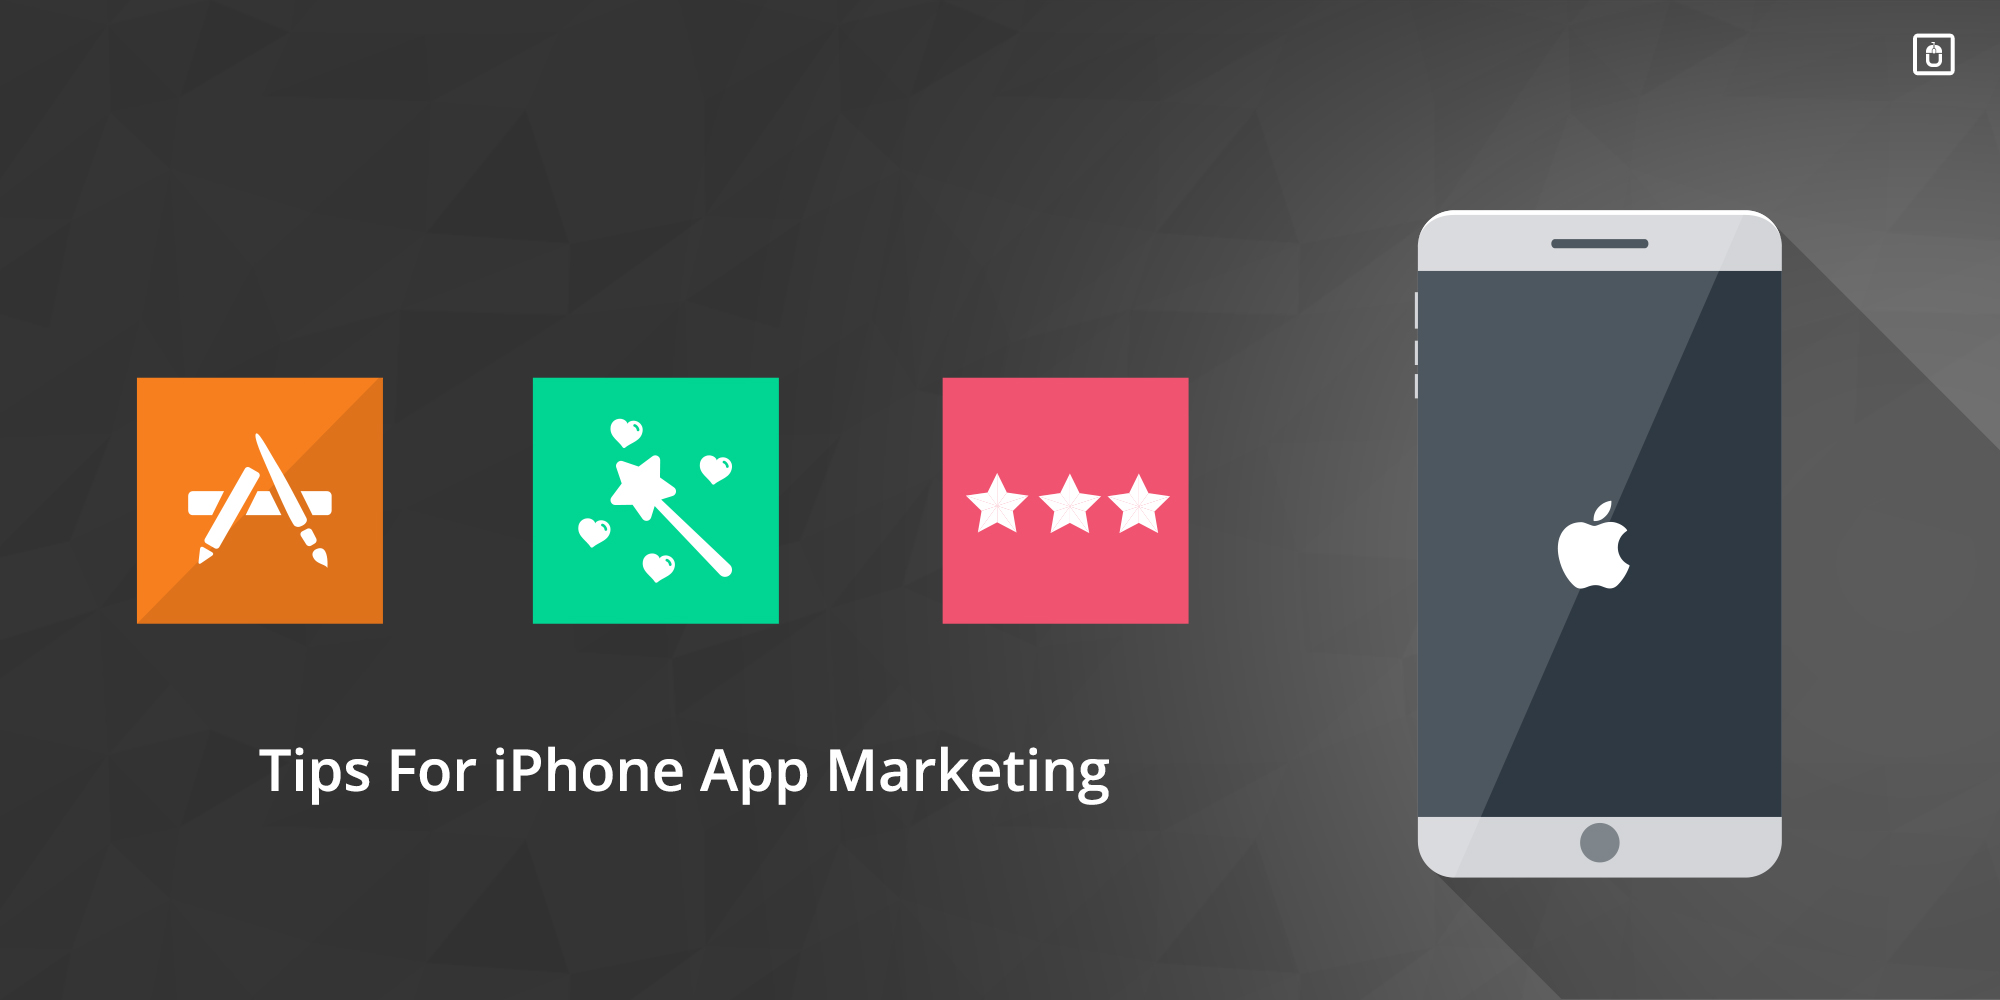 iphone app marketing tips for iphone app marketing iphone application marketing 1218